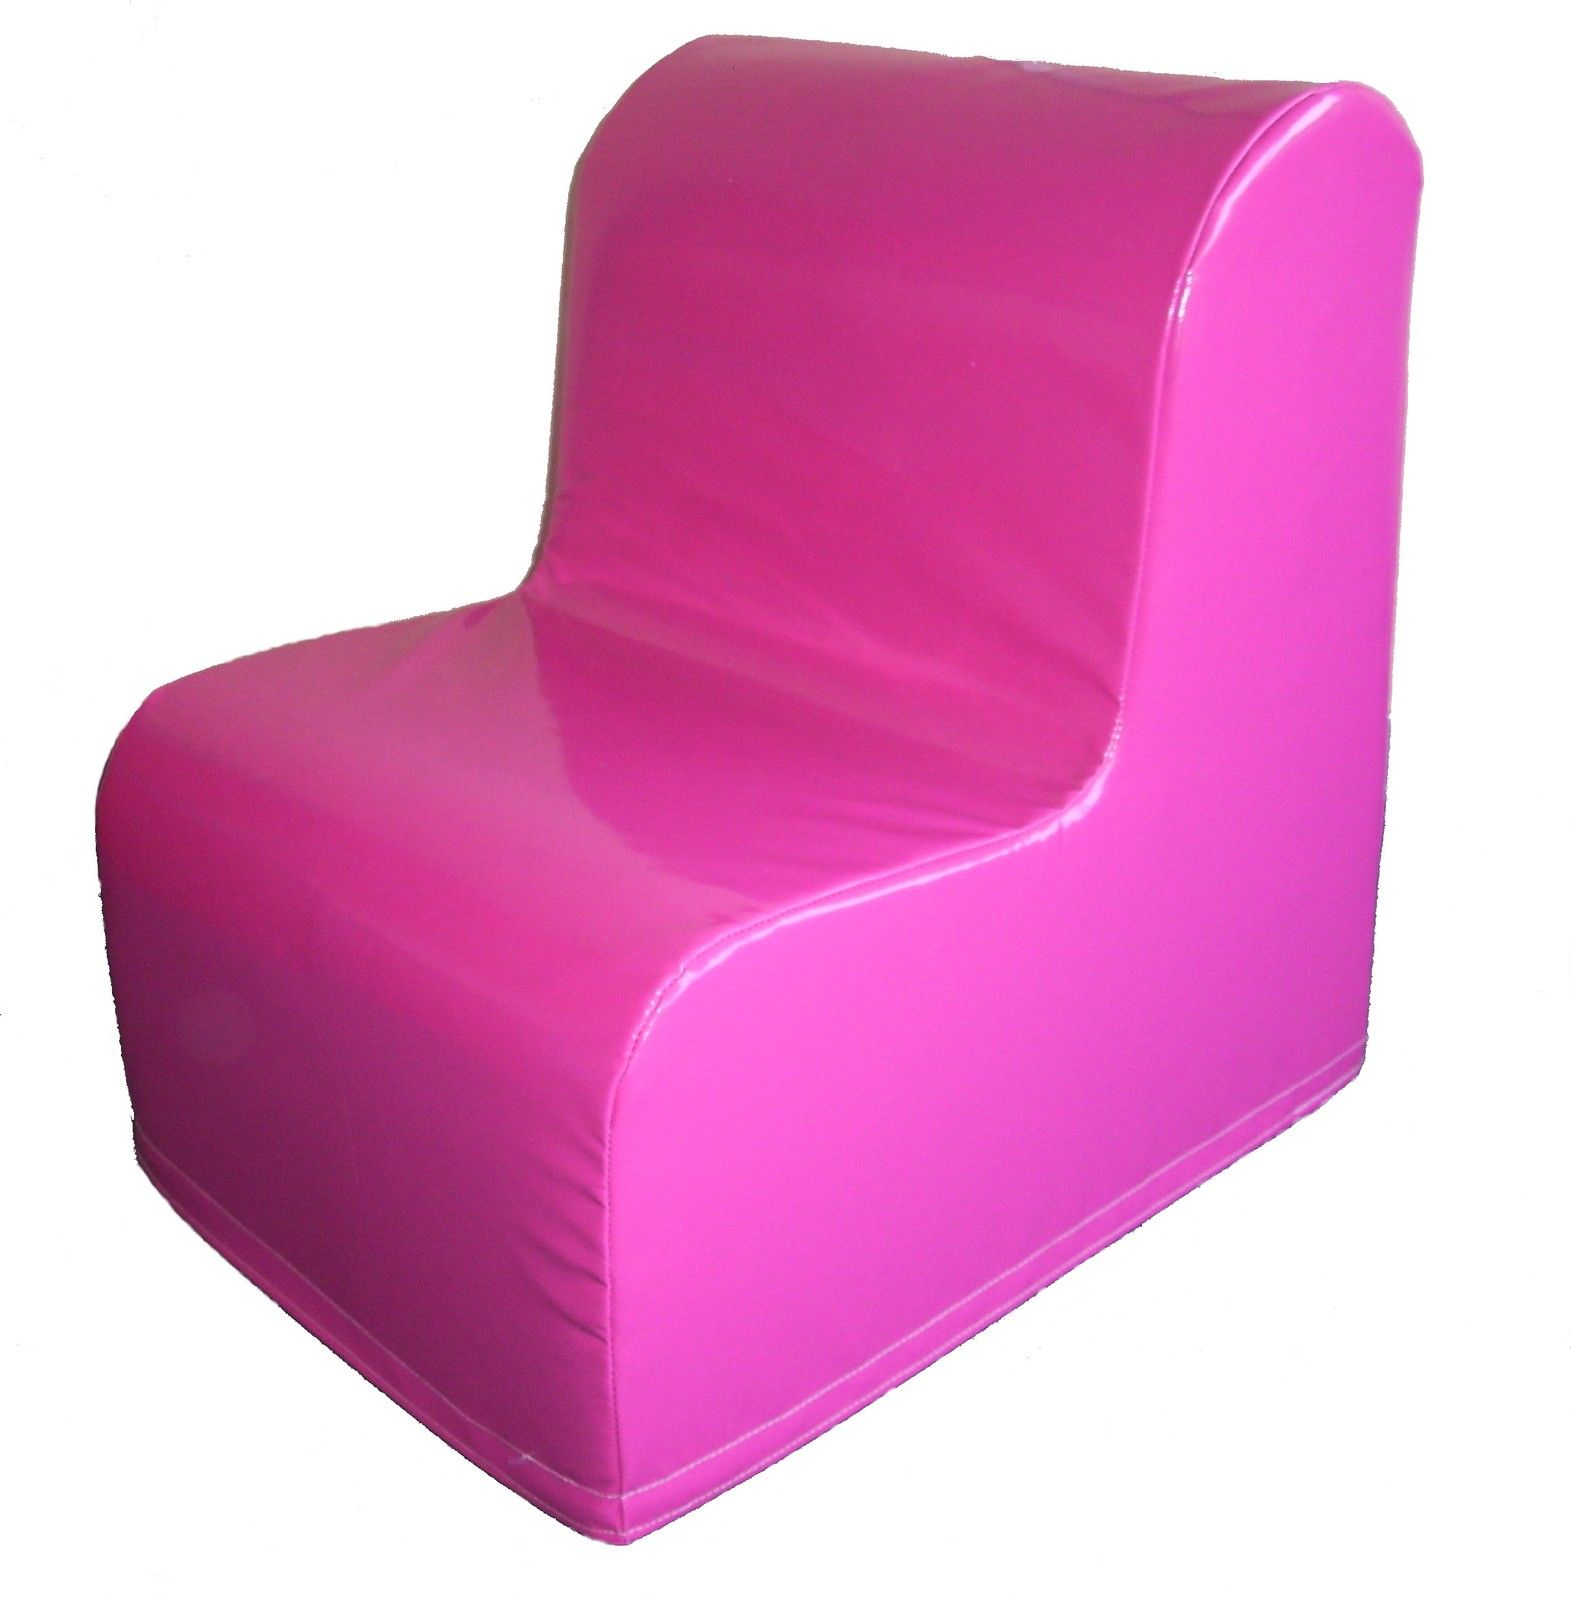 Toddler Soft Chairs Nursery Furniture Soft Play Kids Modular Chair